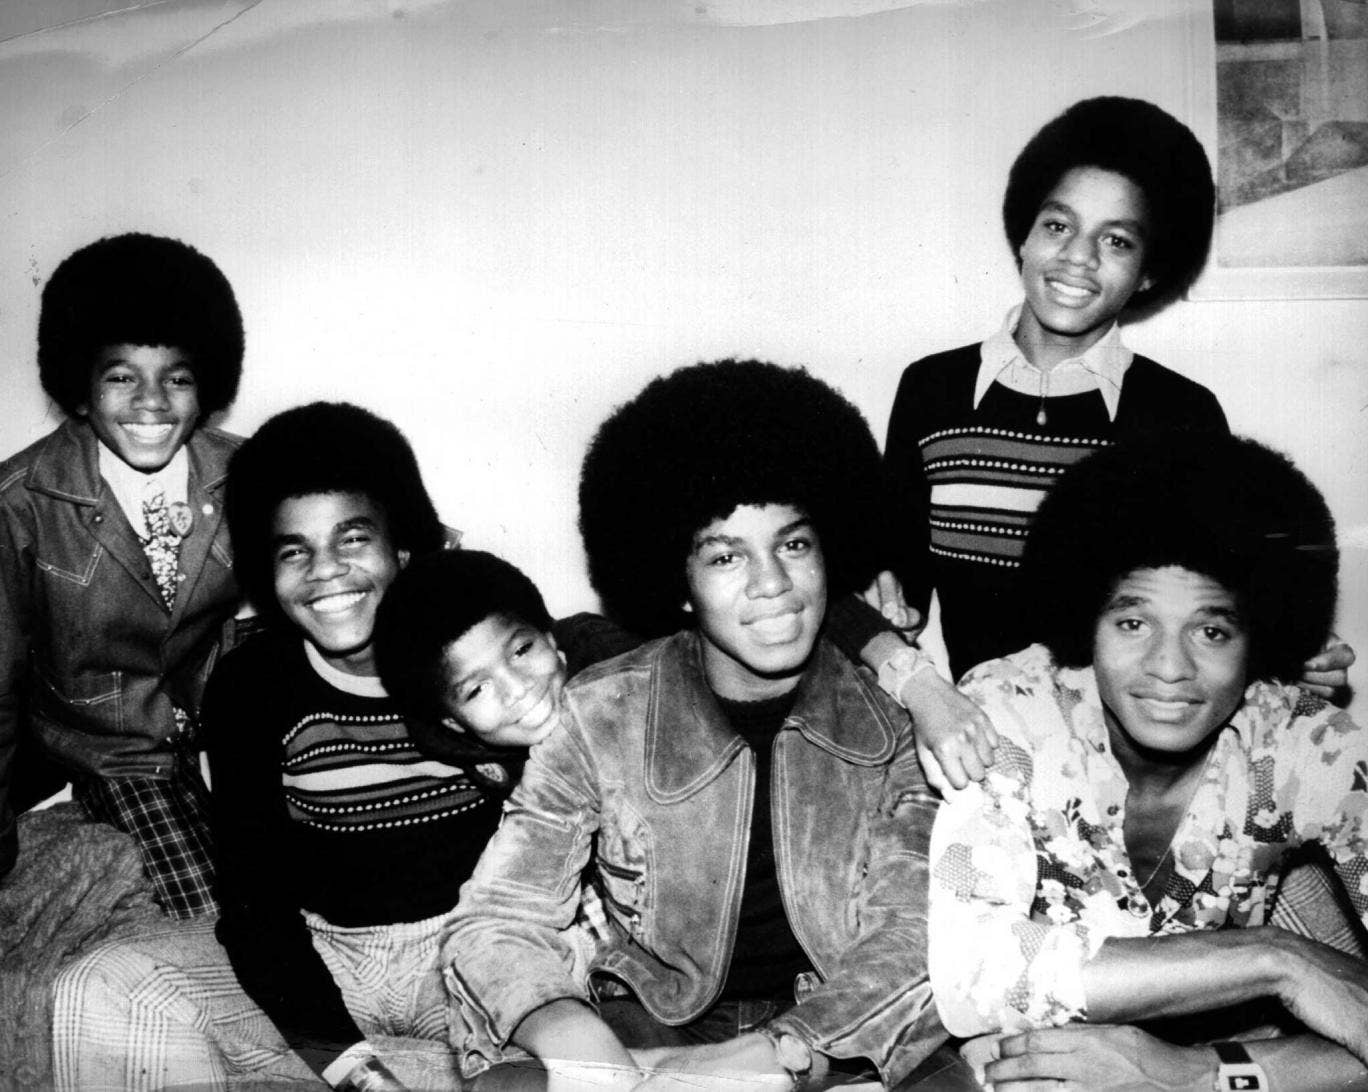 The Jacksons, Blame it on the Boogie: 'We spent the night in 'Frisco/ At every kind of disco.'